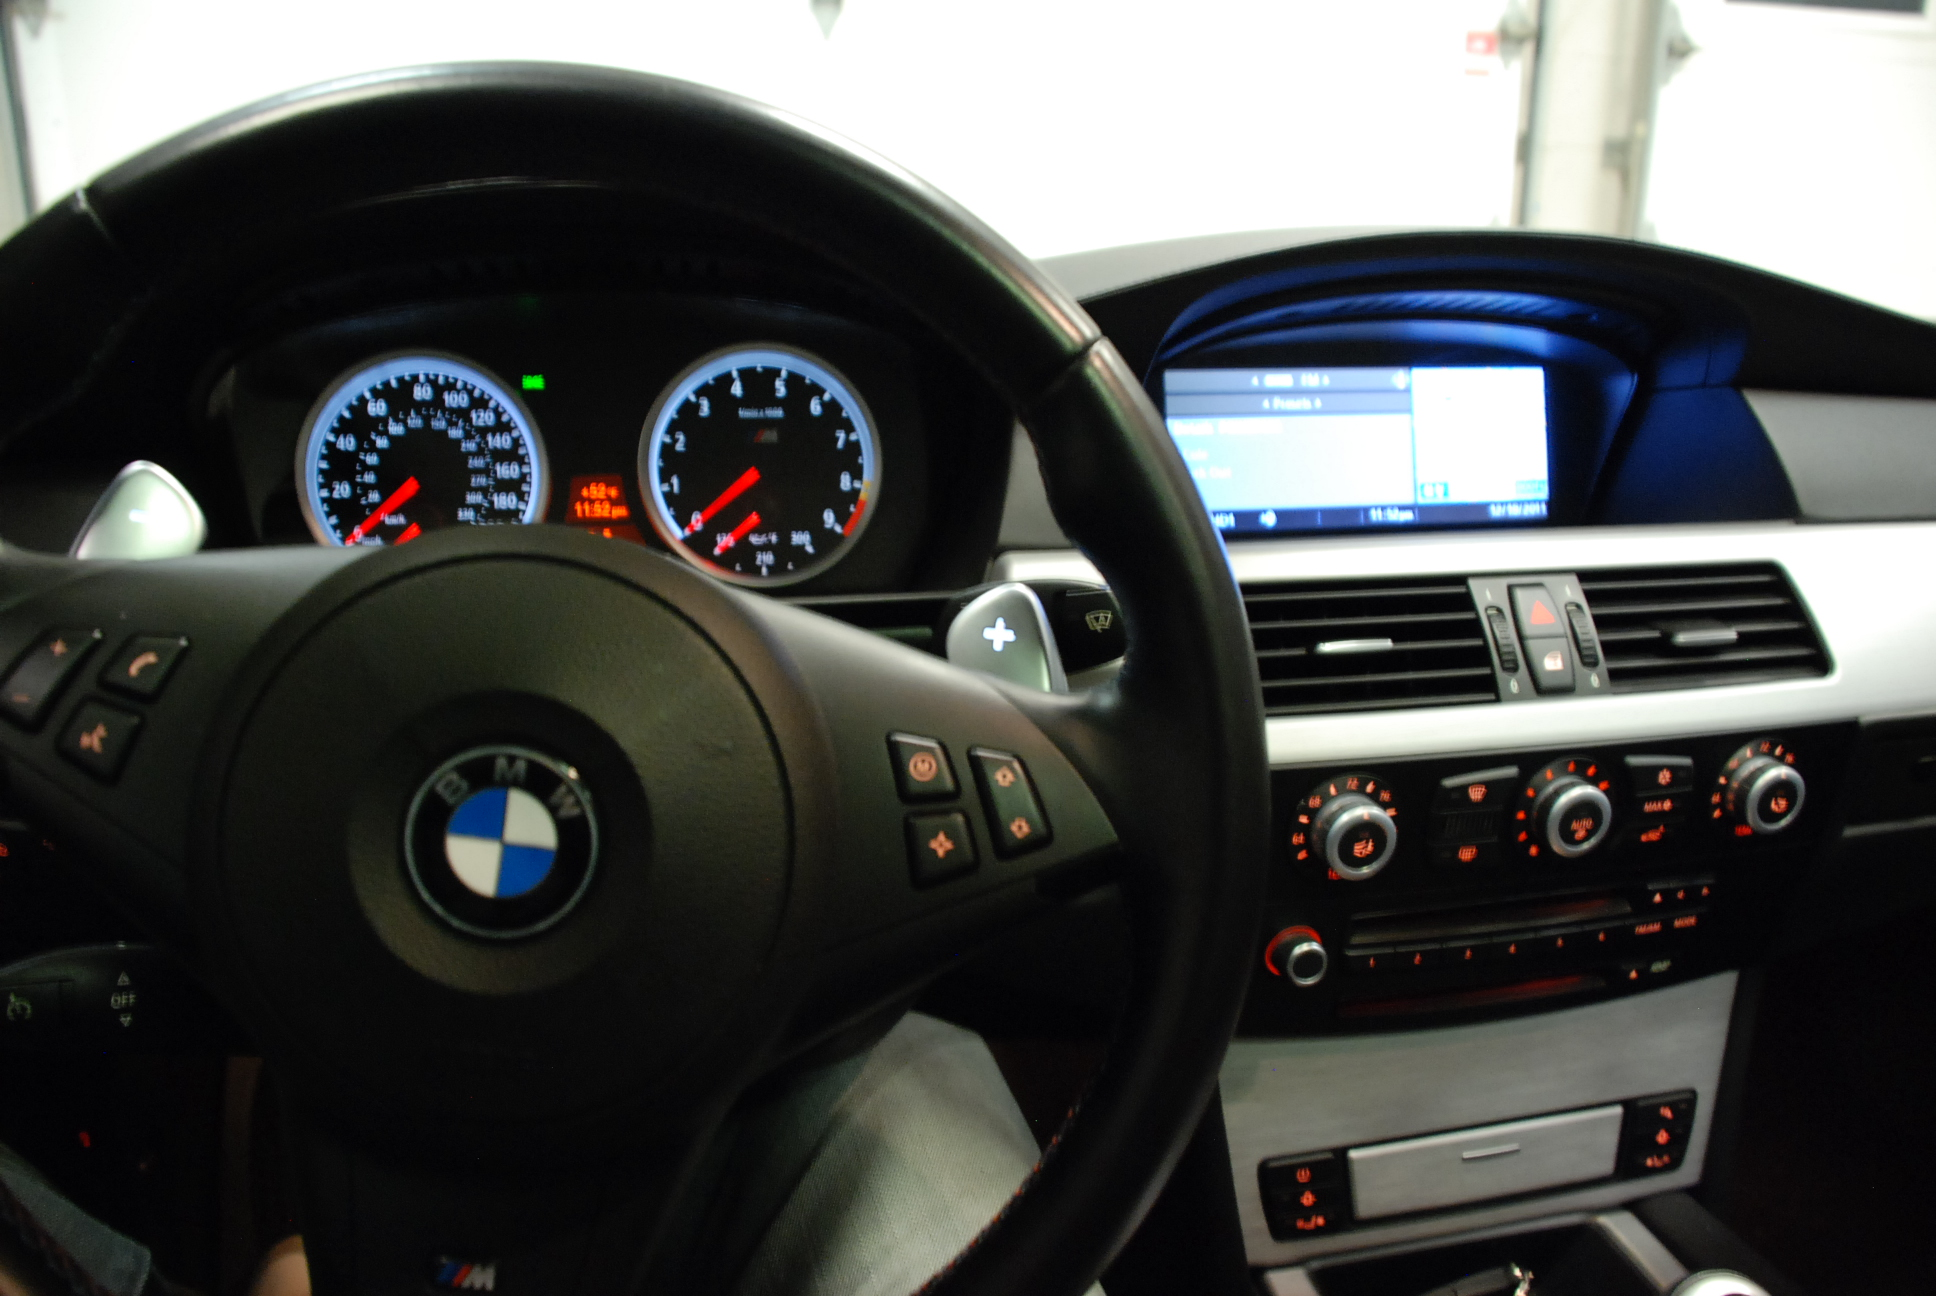 2008 bmw e60 m5 for sale!!!-dsc_0025.jpg